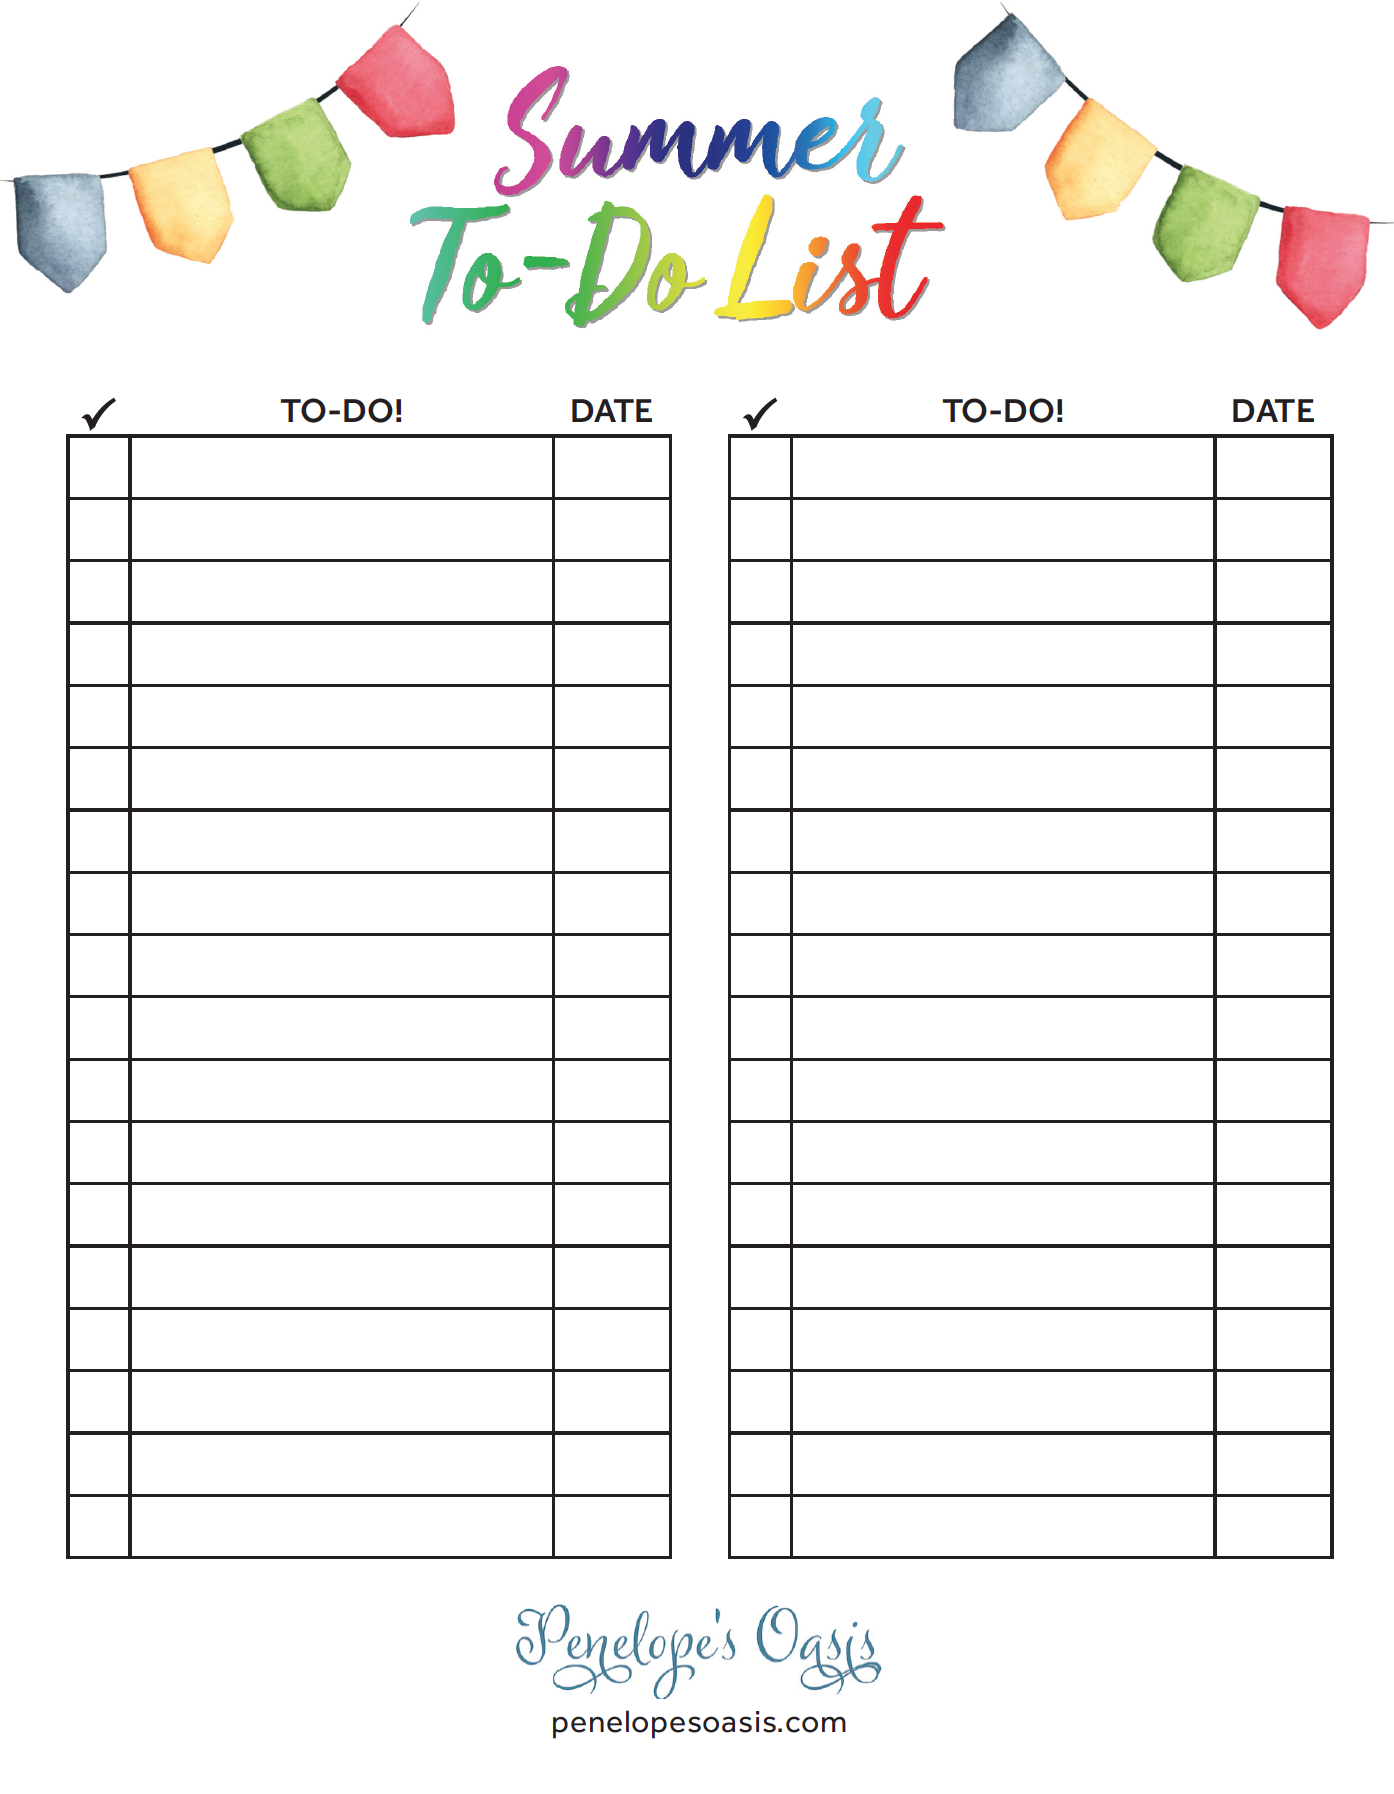 free printable summer to do list